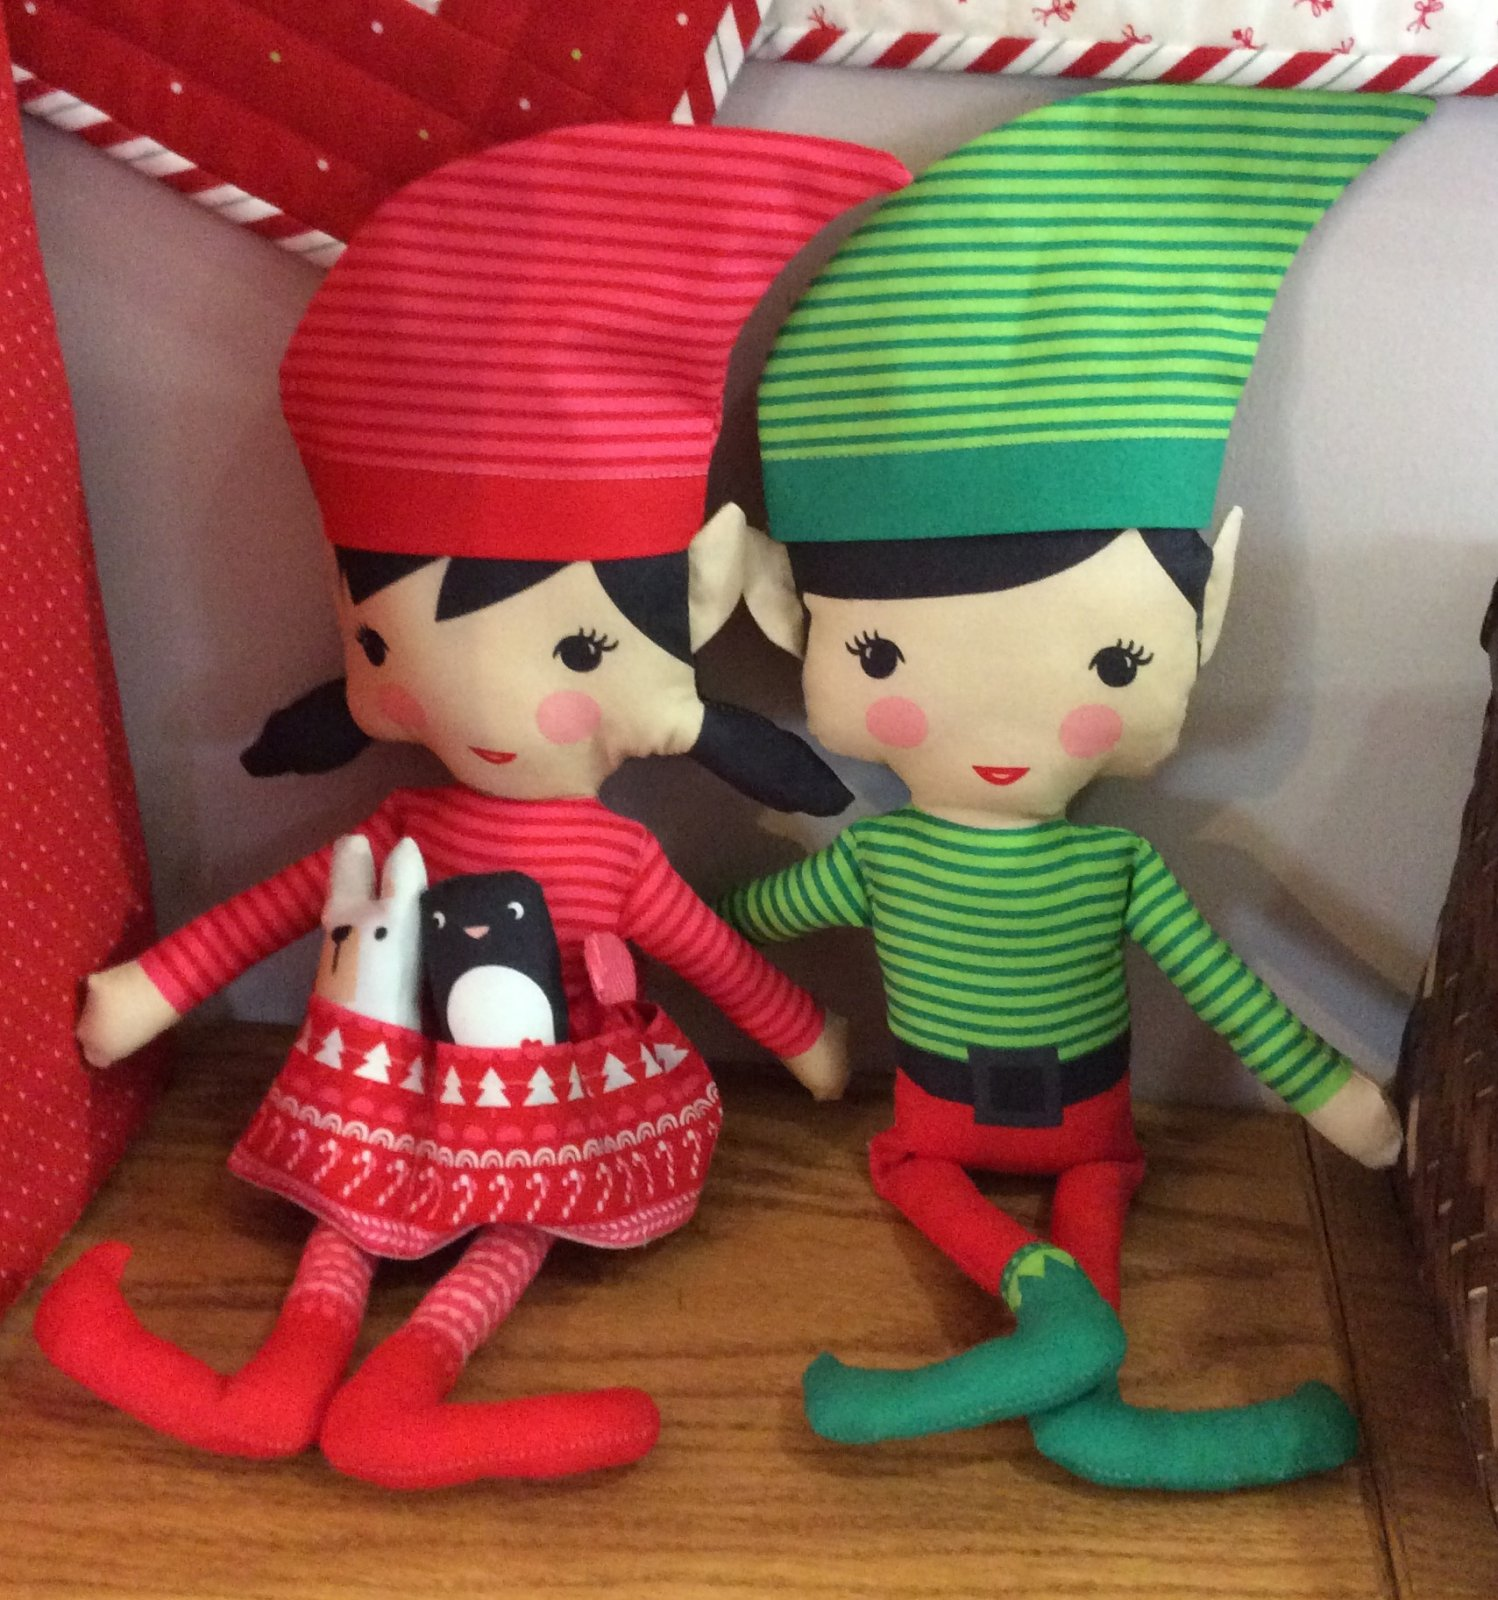 The North Pole Doll Panel